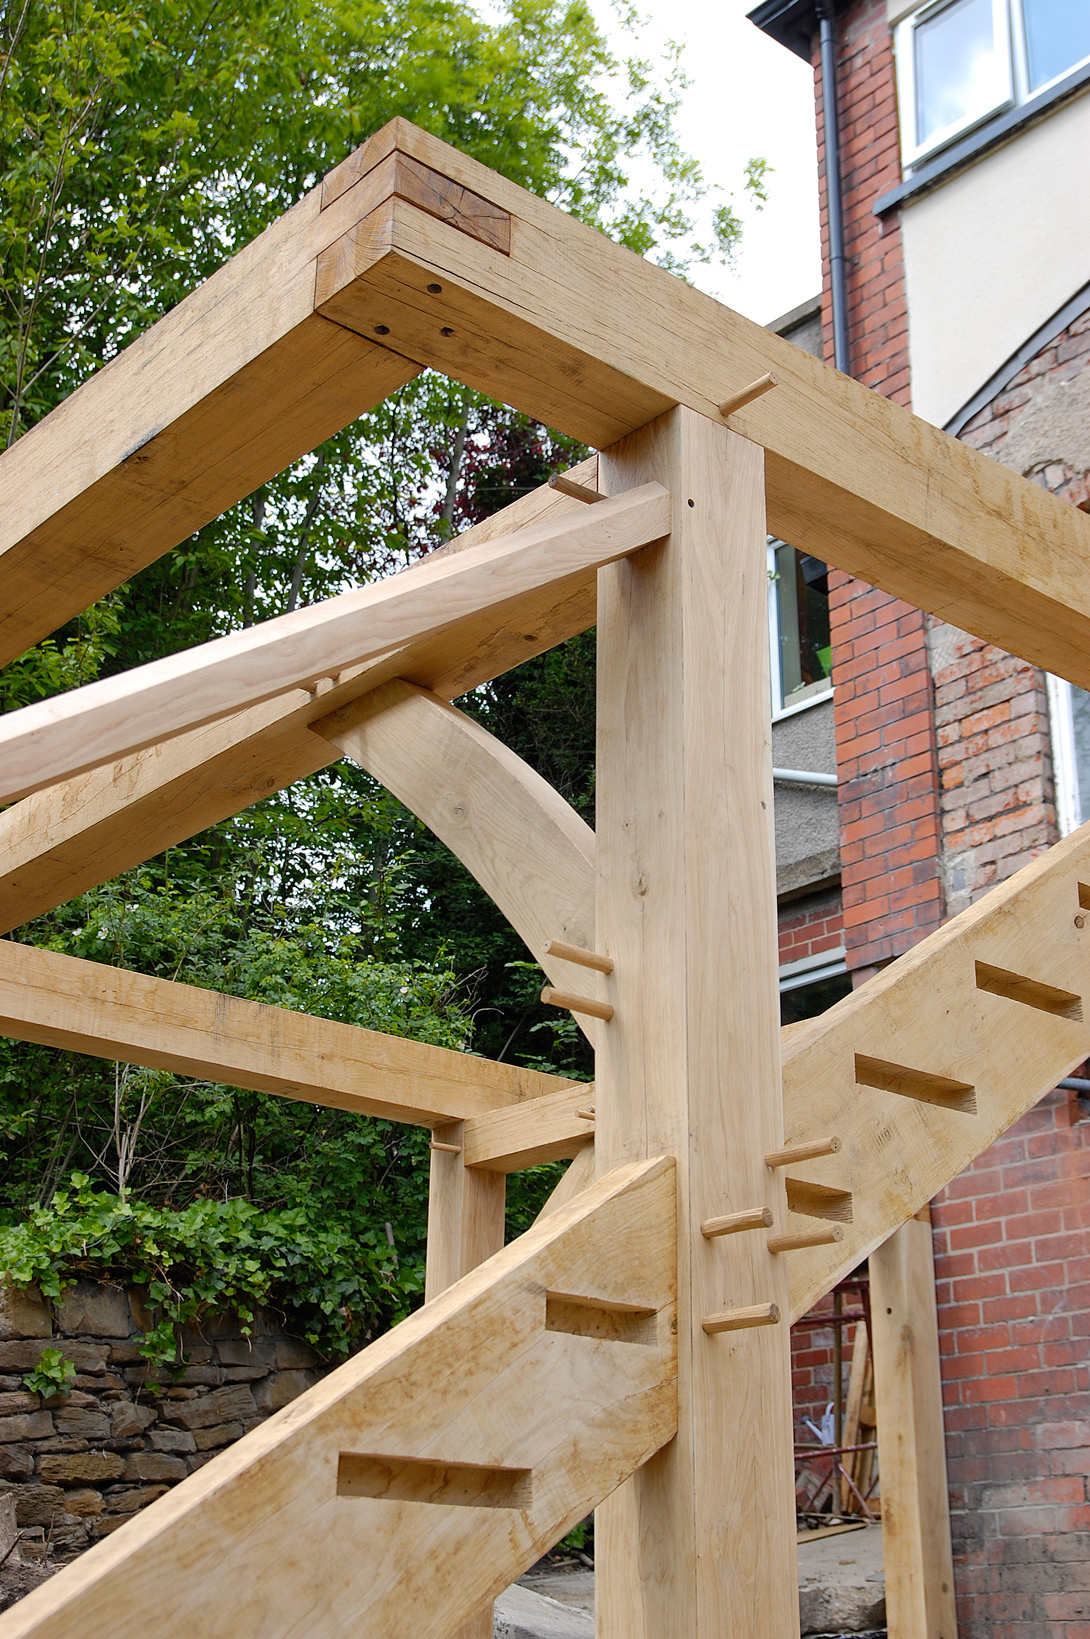 Extension on stilts